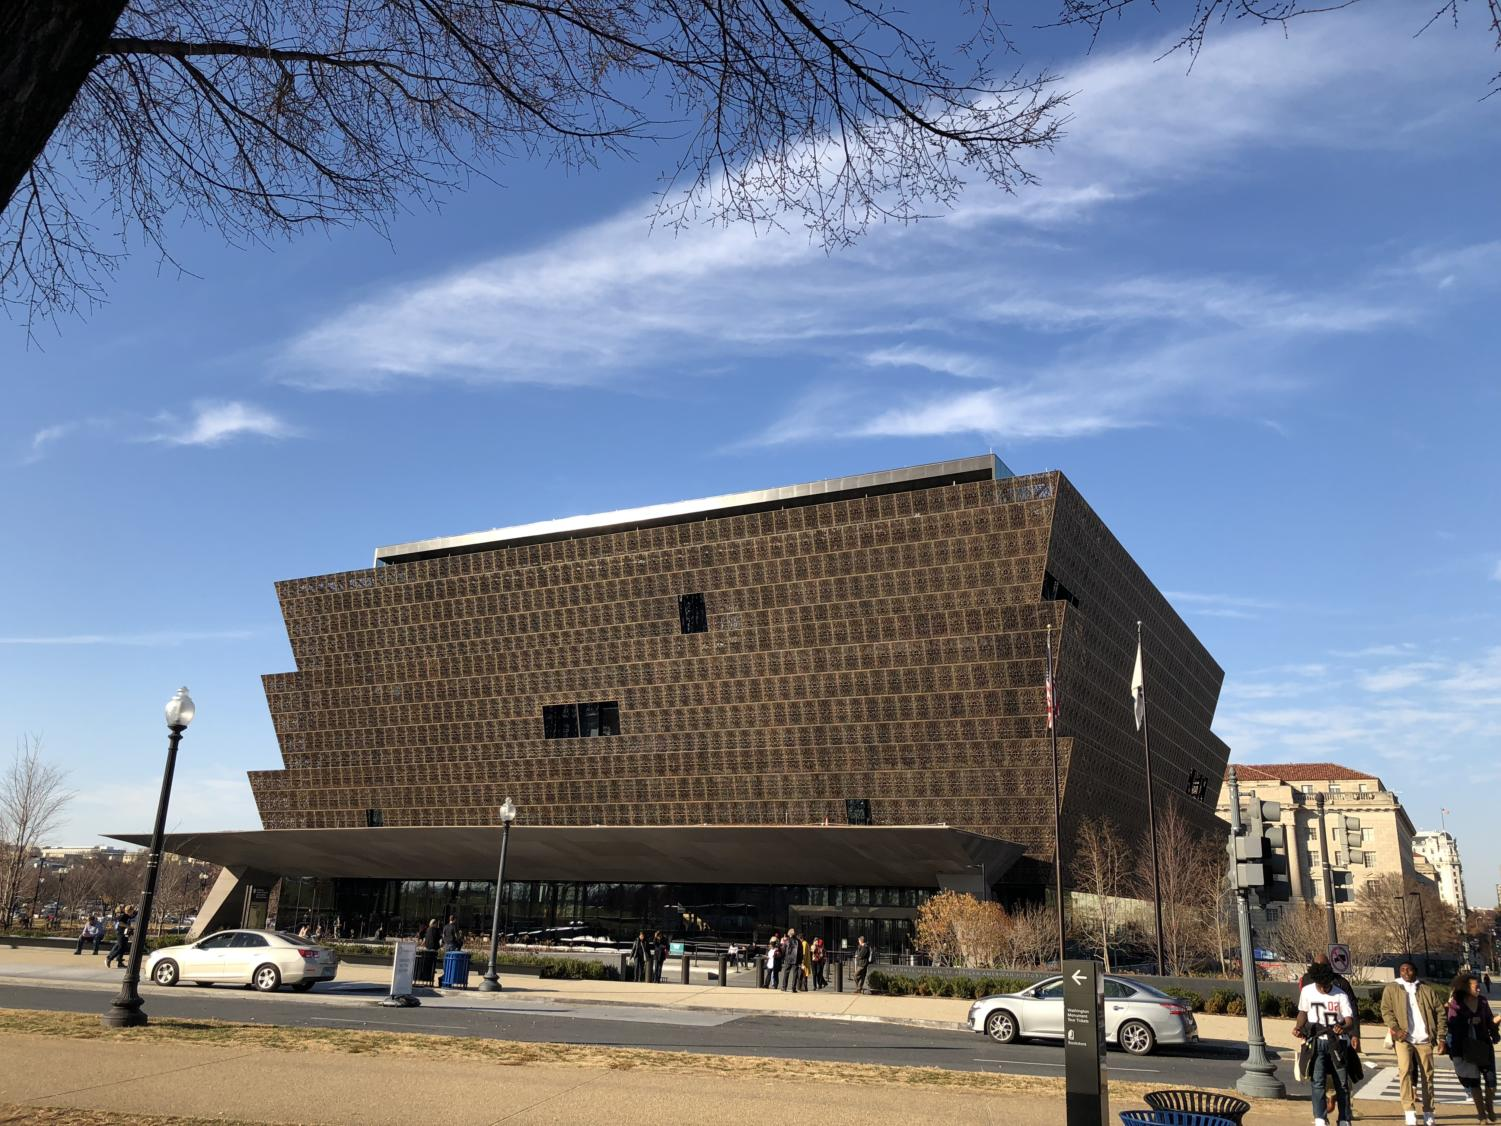 The National Museum of African American History and Culture was built with an interesting design to highlight the unique nature of the museum.